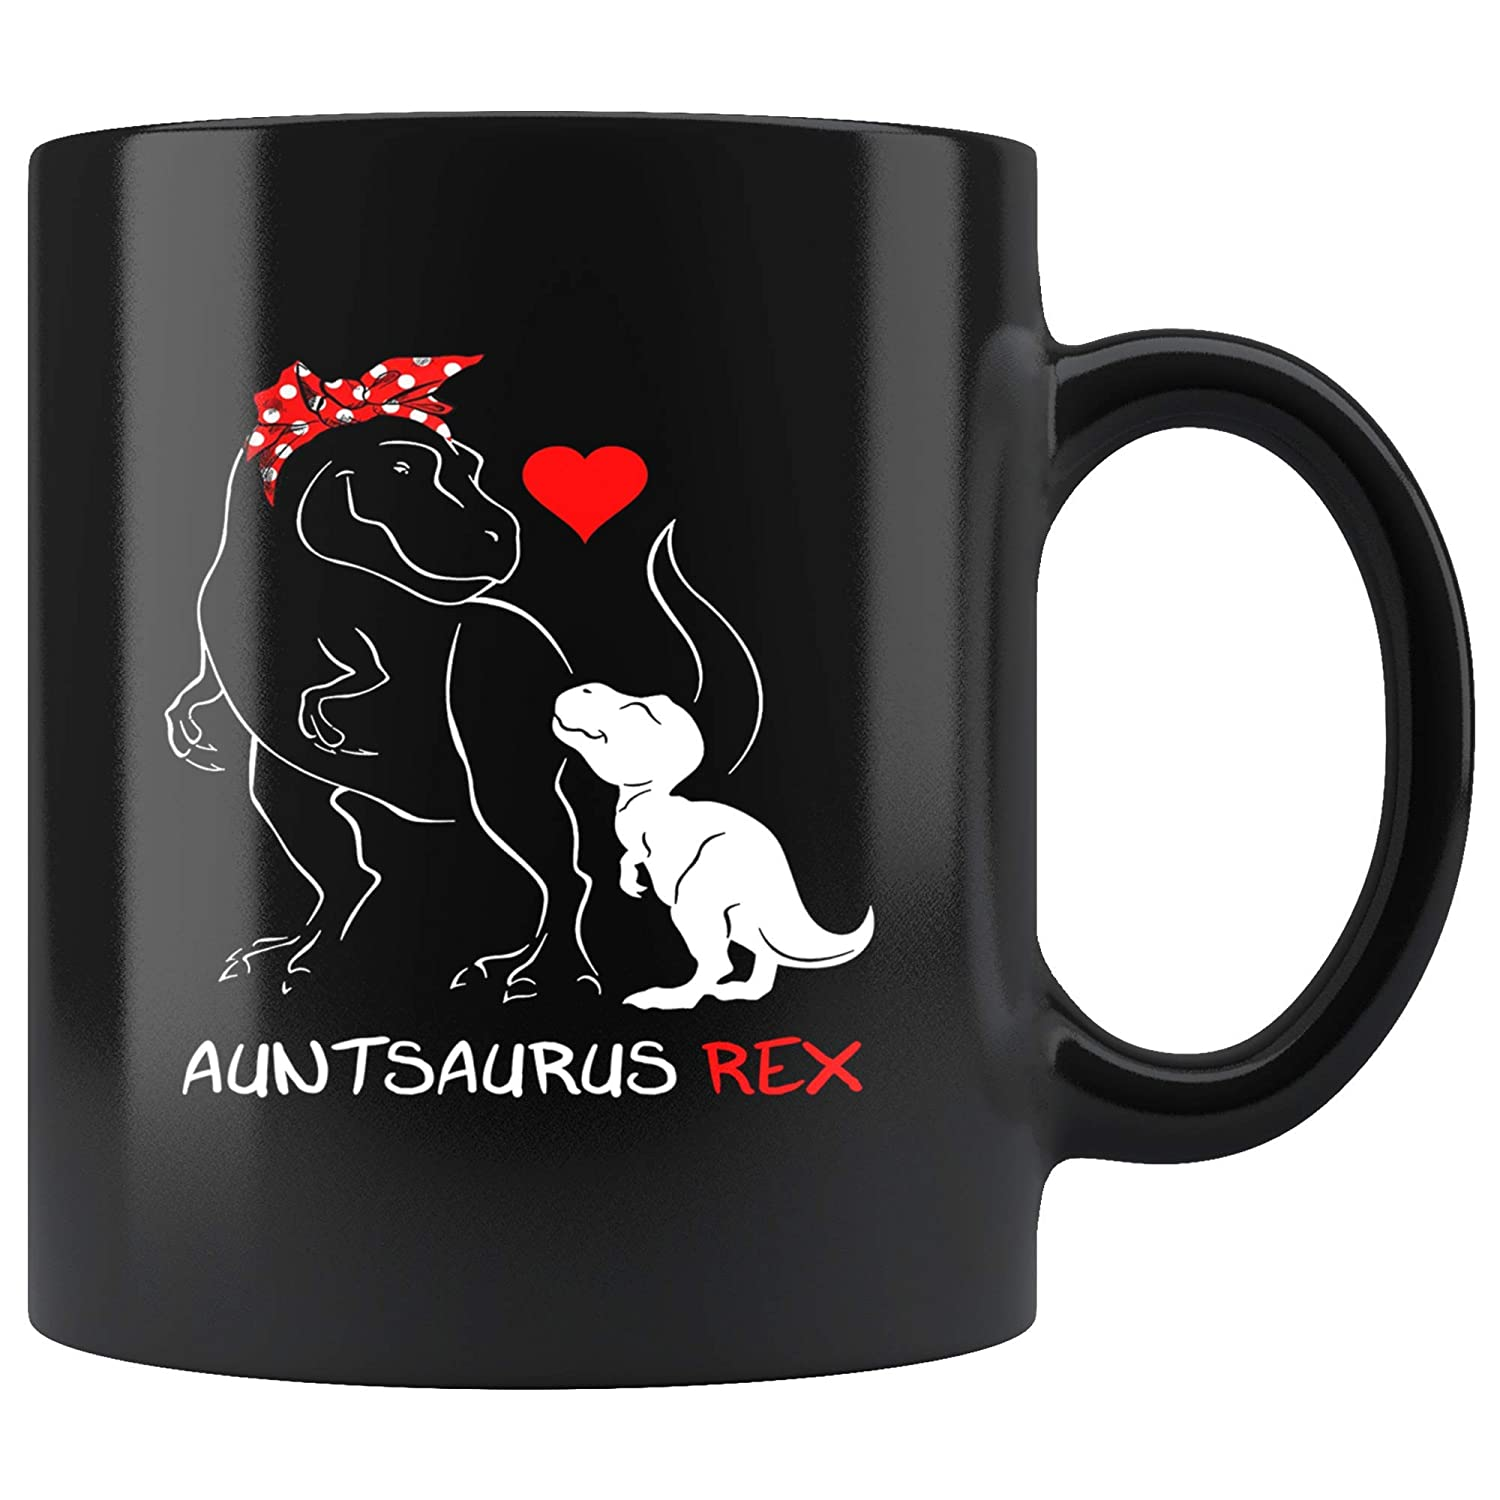 Auntsaurus Rex Birthday Gifts Funny Aunt Auntie Cute Coffee Mug 11oz Tea Cup Funny Birthday Christmas Halloween Gift for Men Women Vintage Retro